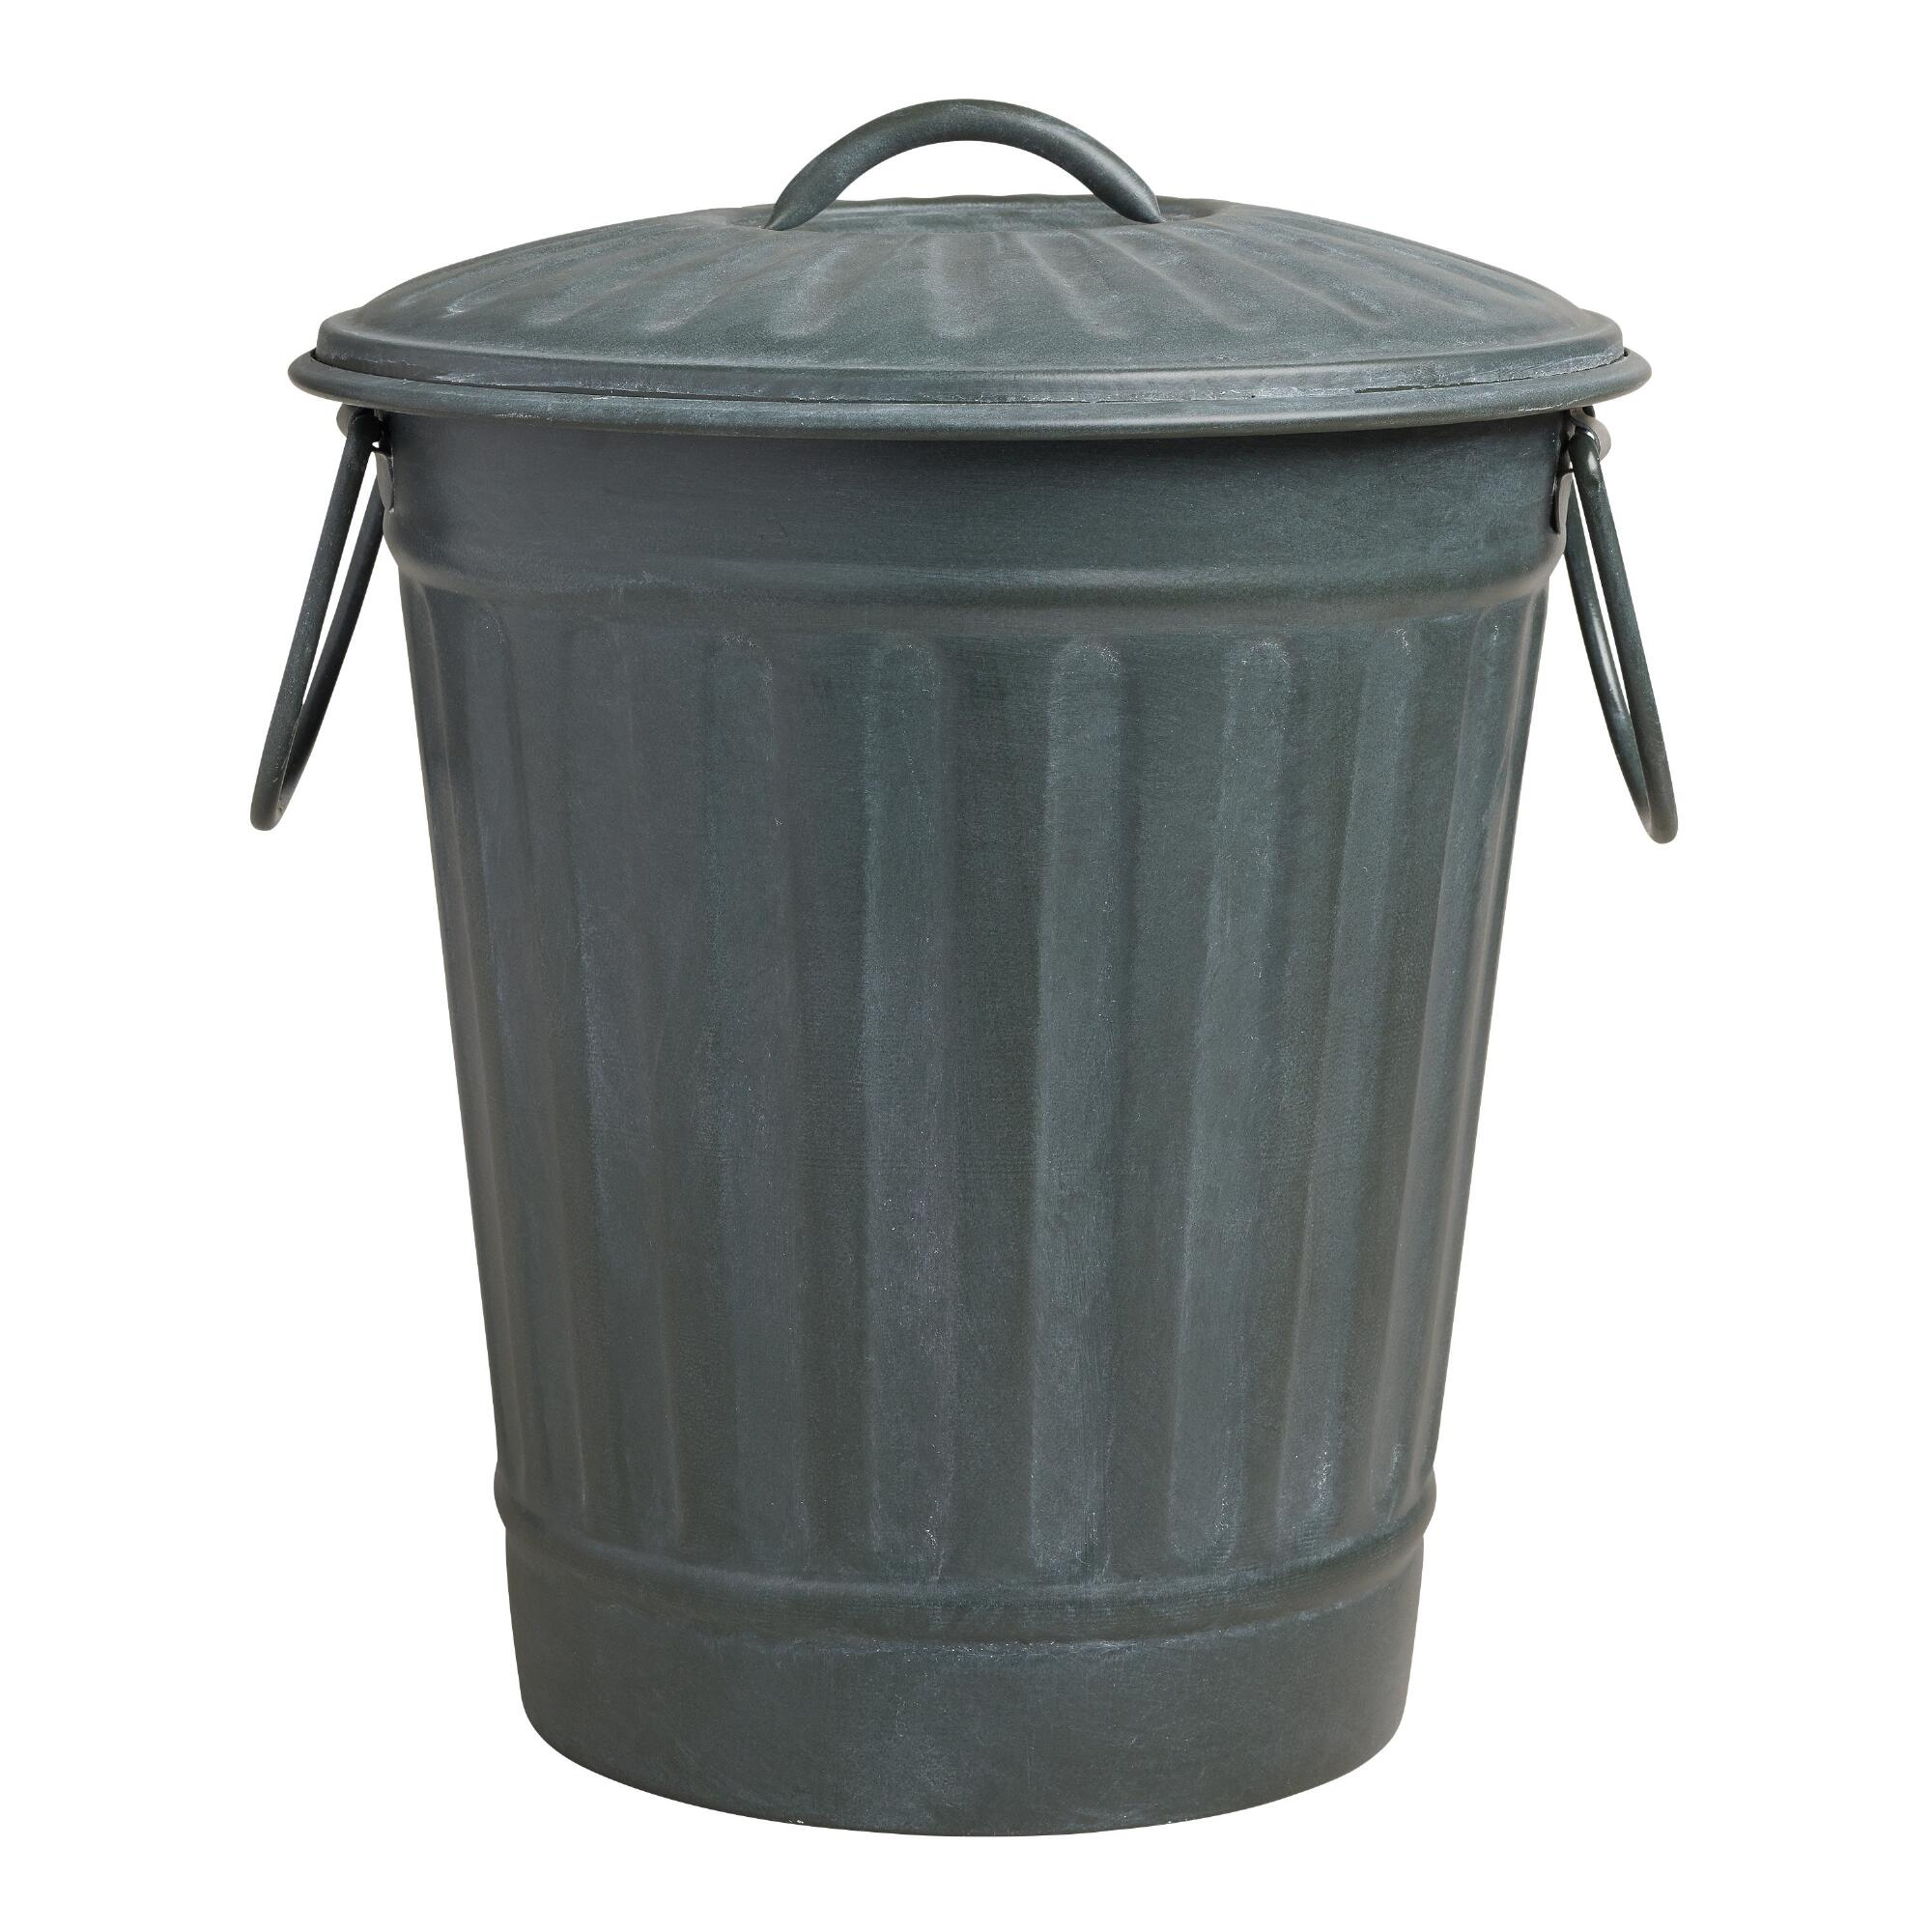 Aluminium Garbage Cans : Large steel gray retro metal trash can world market